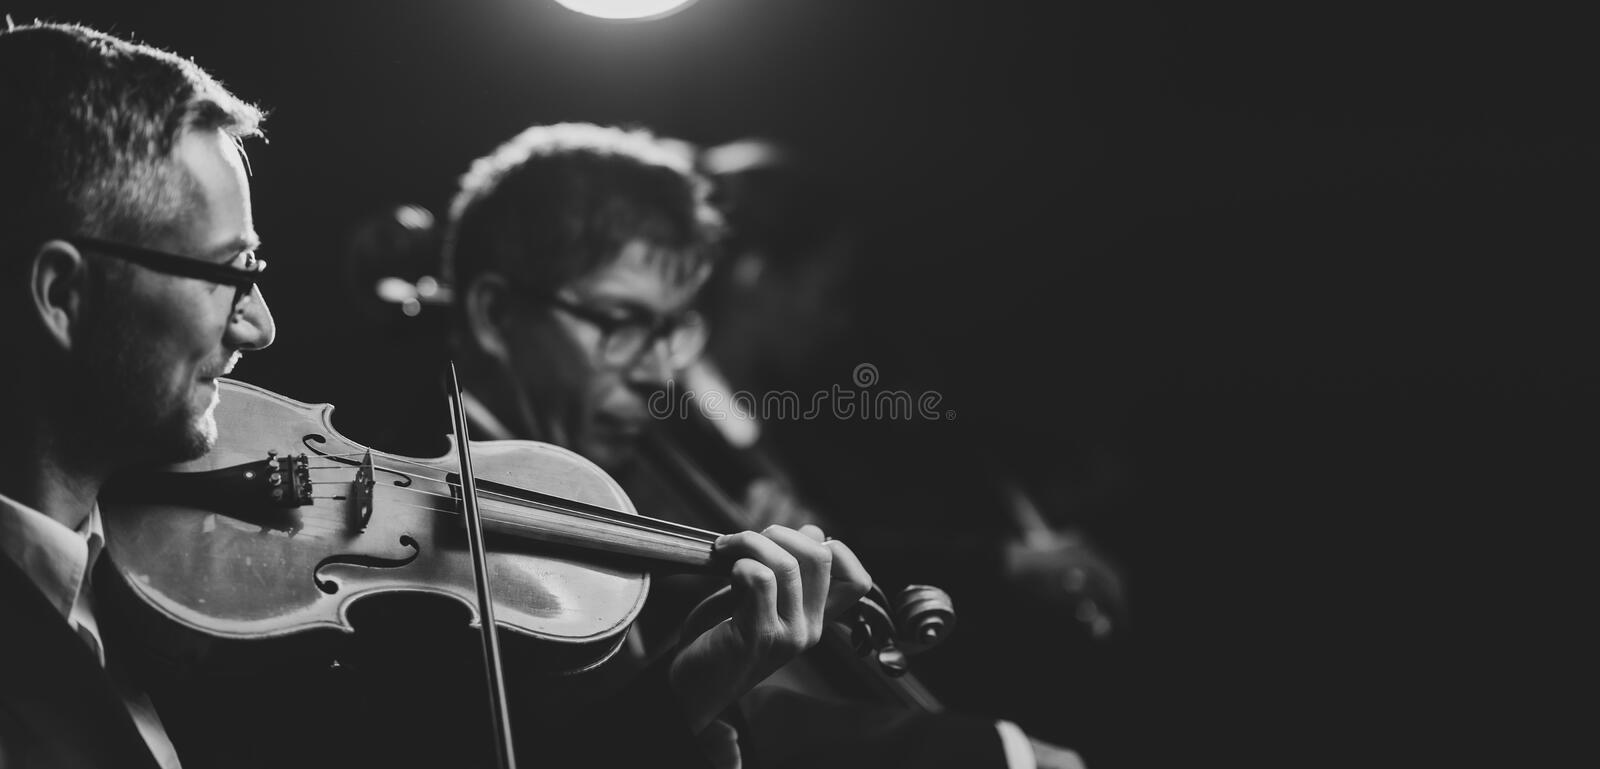 Classical music concert performance royalty free stock photography